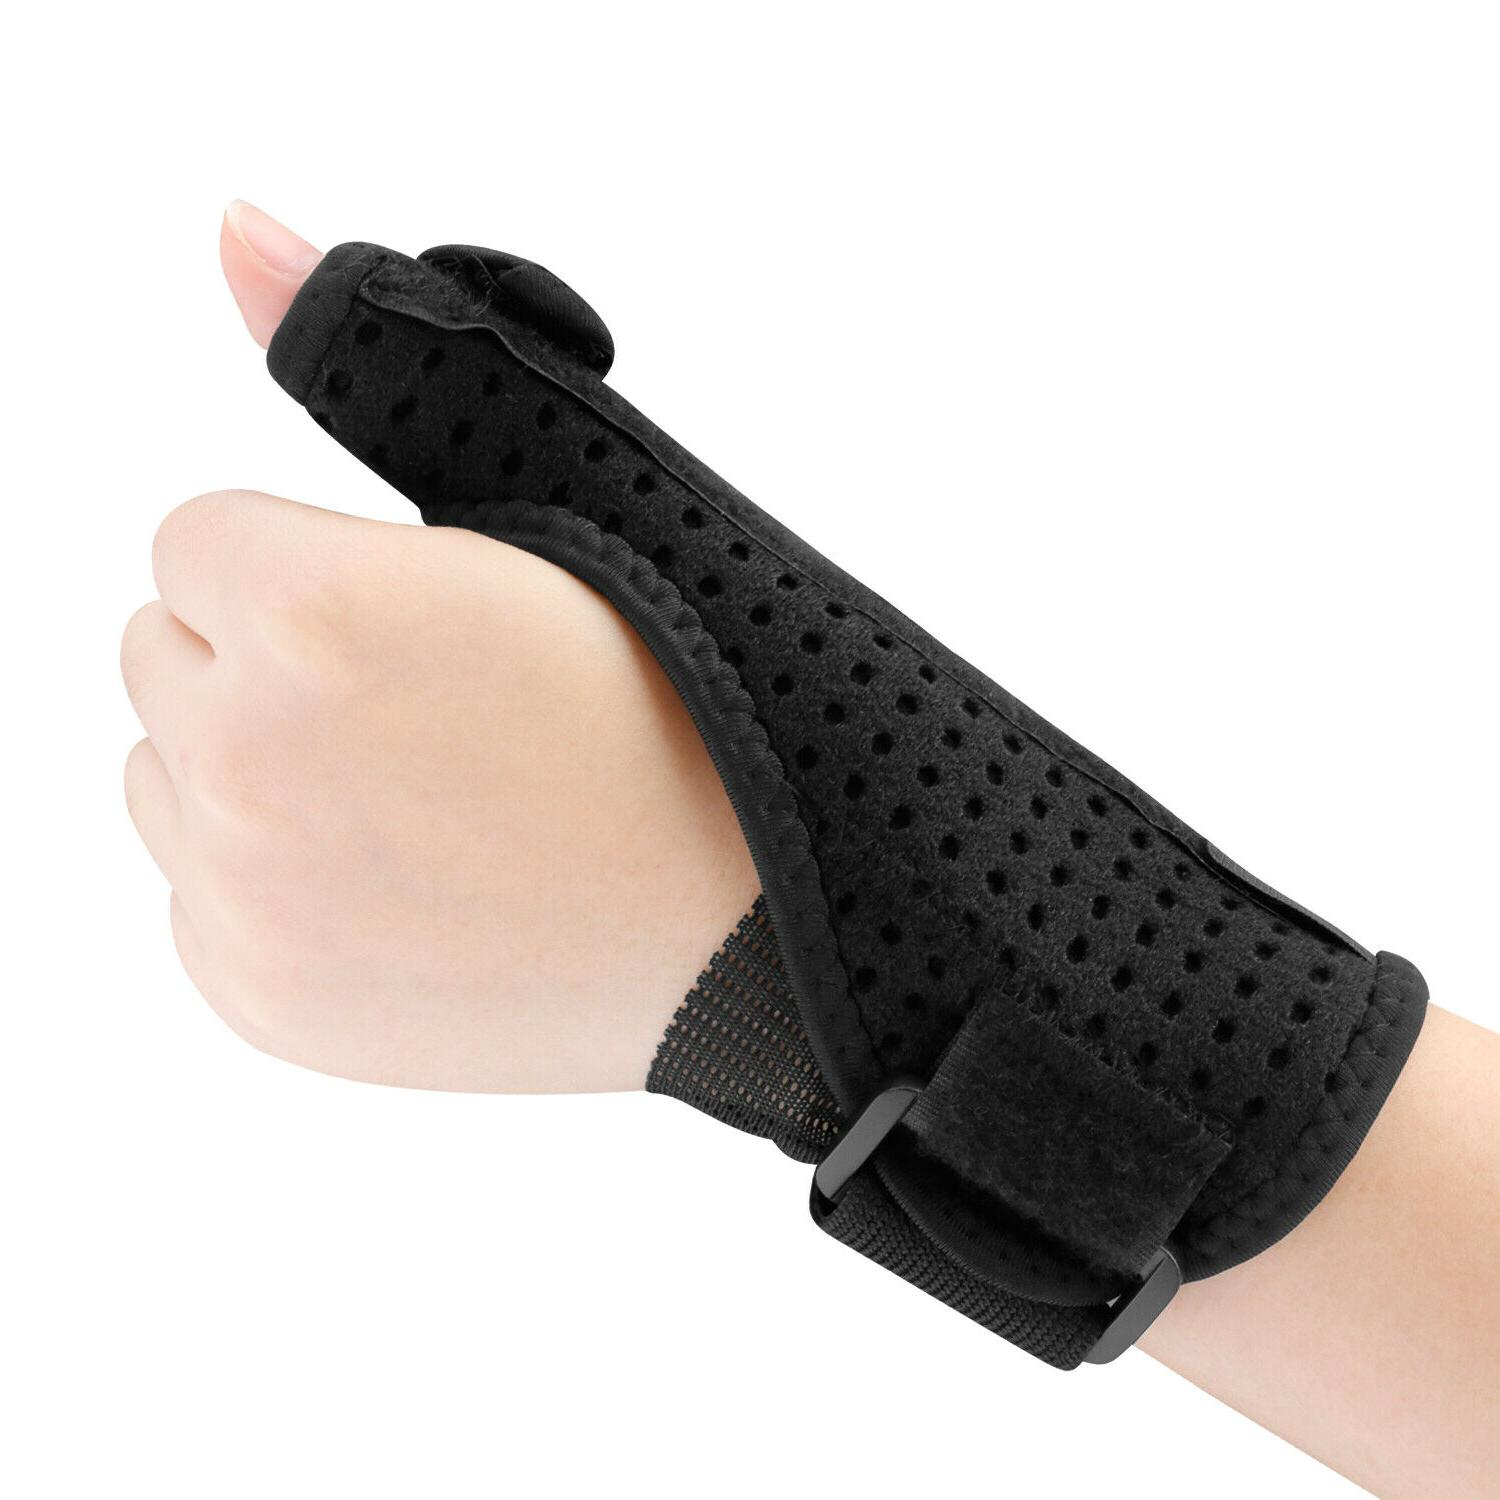 Right Hand Arthritis Sprain Carpal Thumb Wrist Brace Support